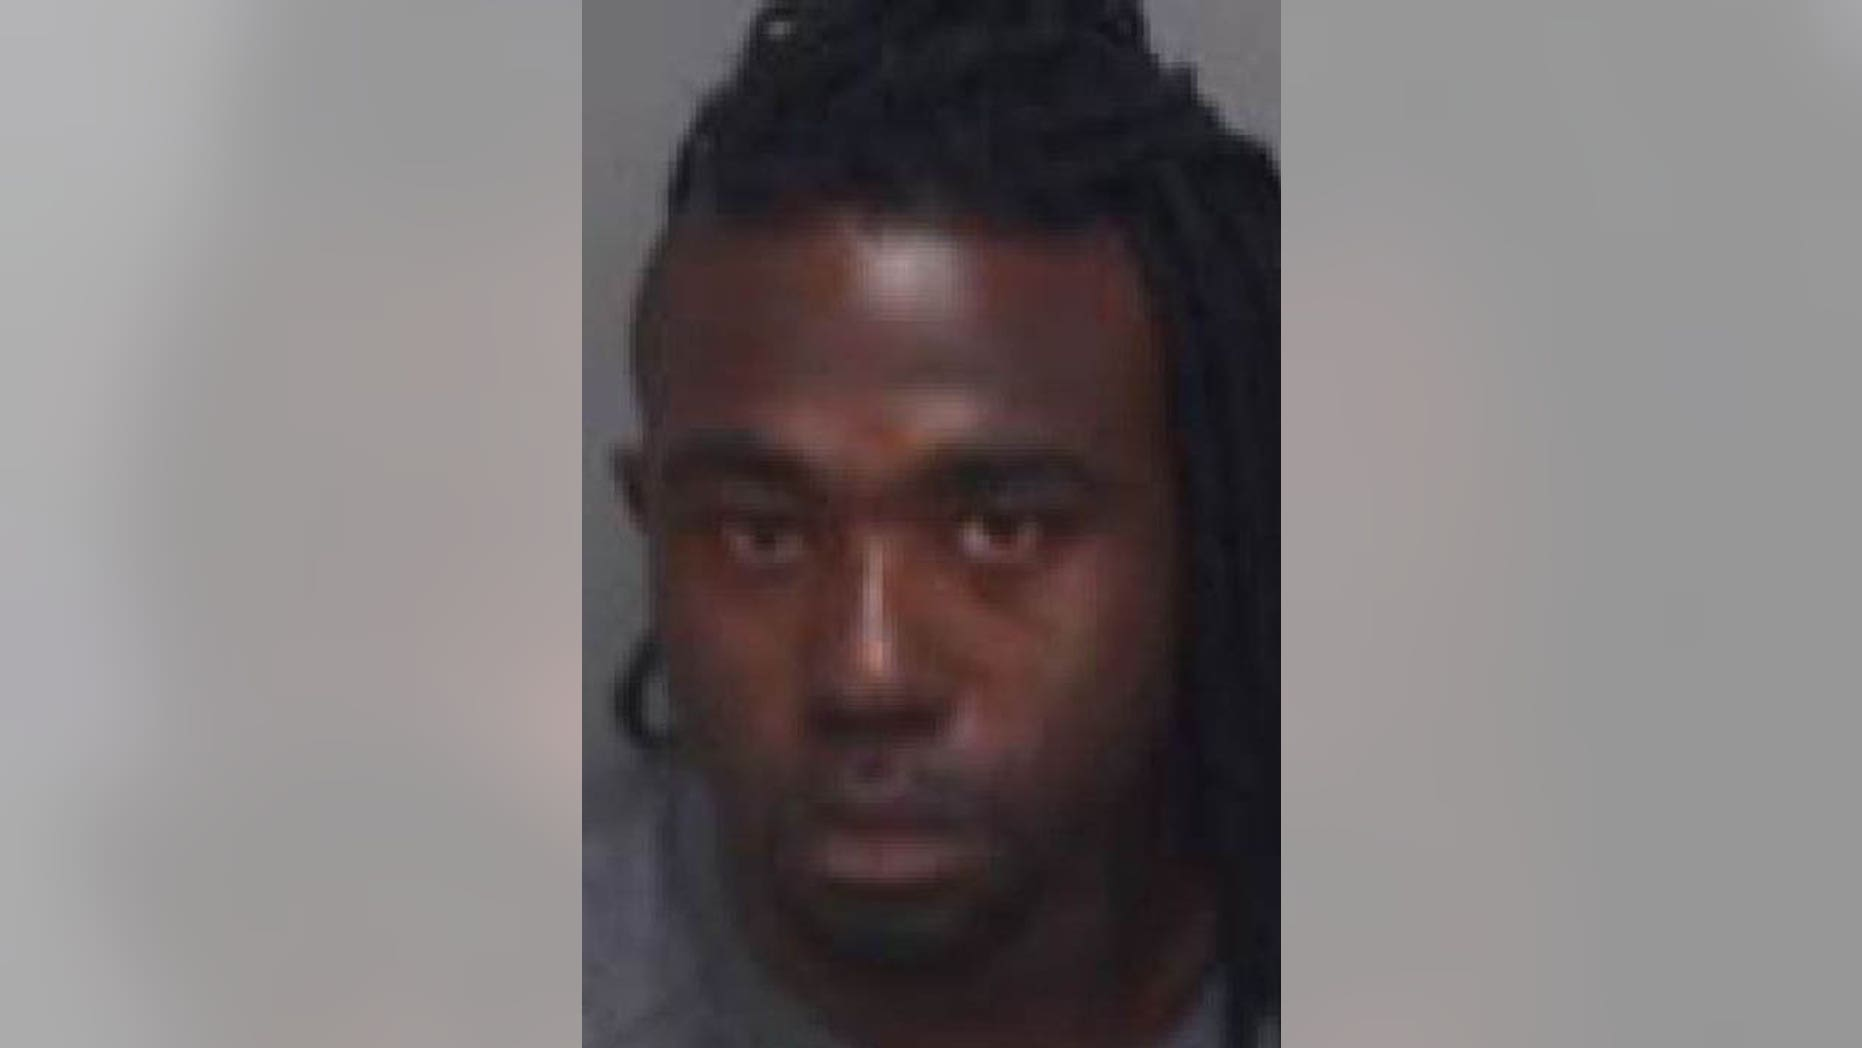 Dominique Albert attempted to carjack a vehicle that held two undercover police officers.